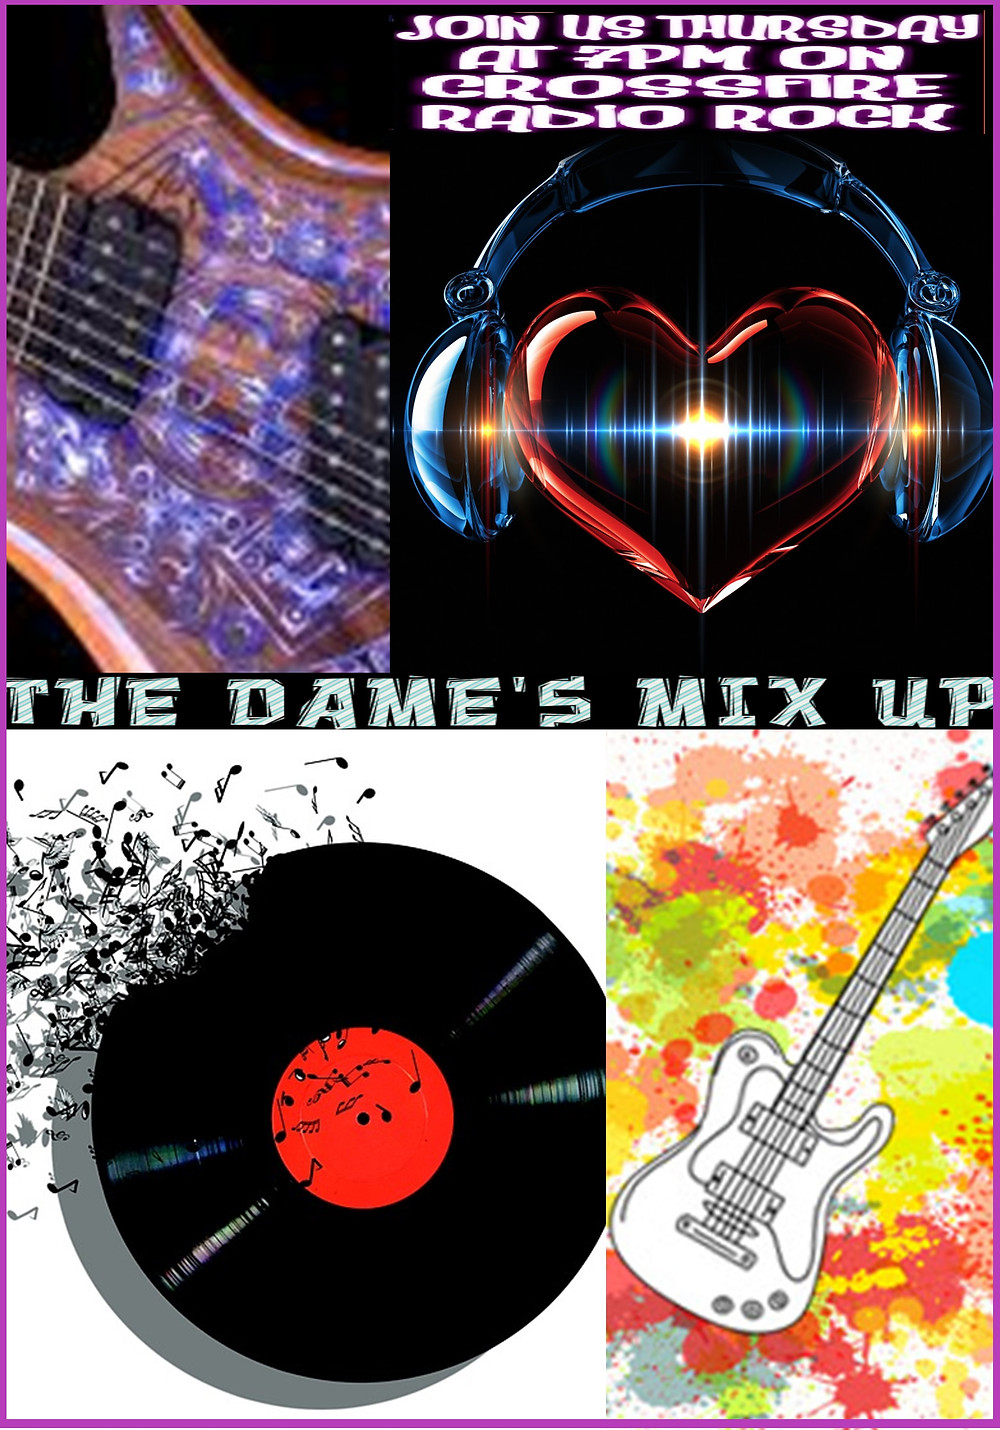 the dames mix up on crossfire radio rock